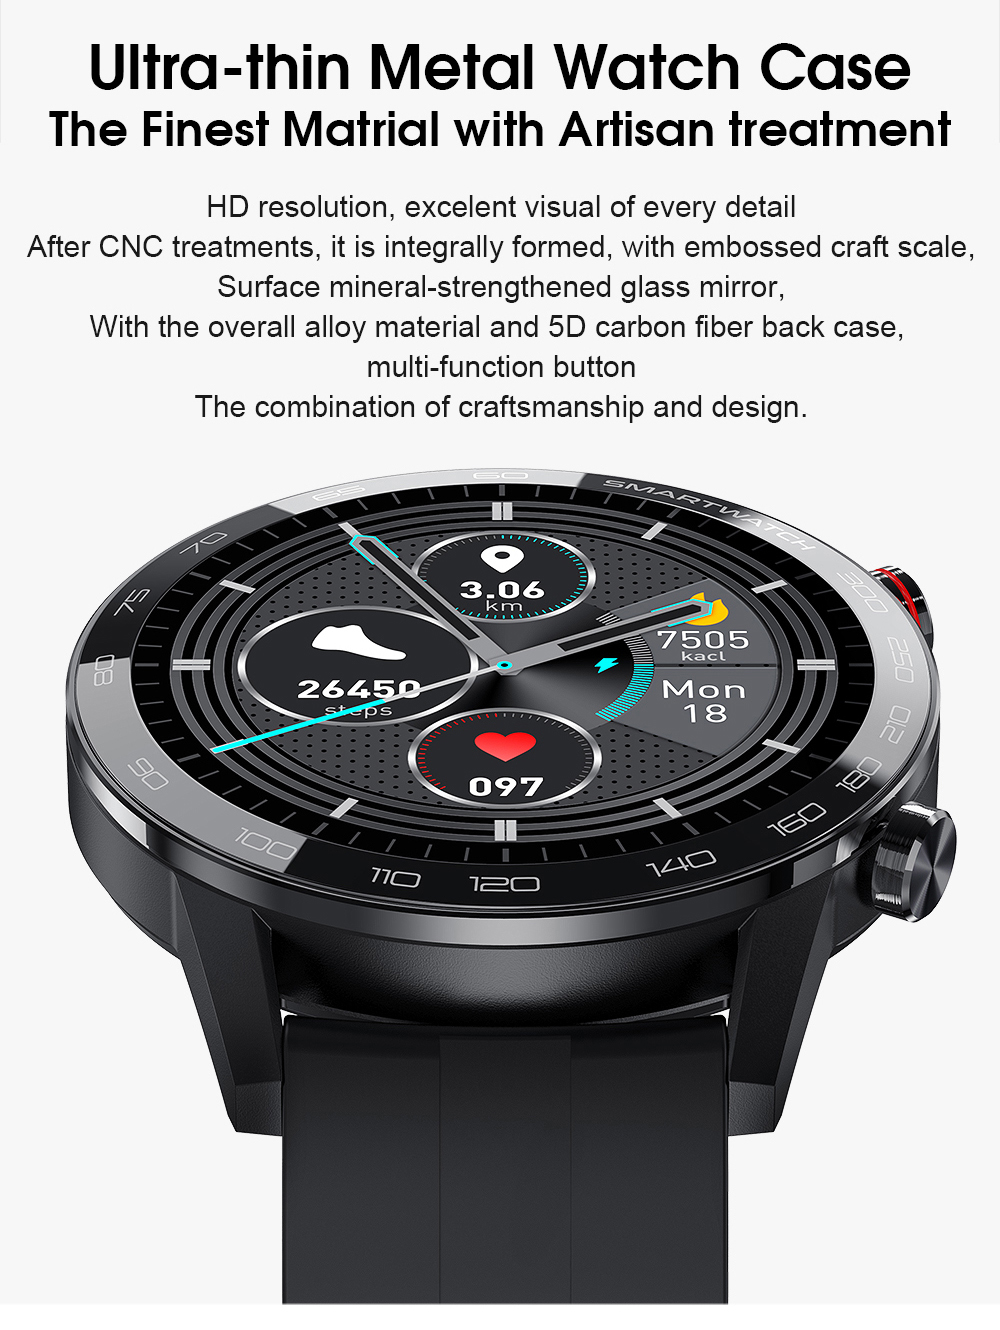 H73bcbae2617941dd977ca7c91ead5fdc9 Reloj Inteligente Hombre Smartwatch Ecg Ppg IP68 Smarthwatch Men Full Touch Smart Watch 2020 For Huawei Xiaomi Android Apple IOS